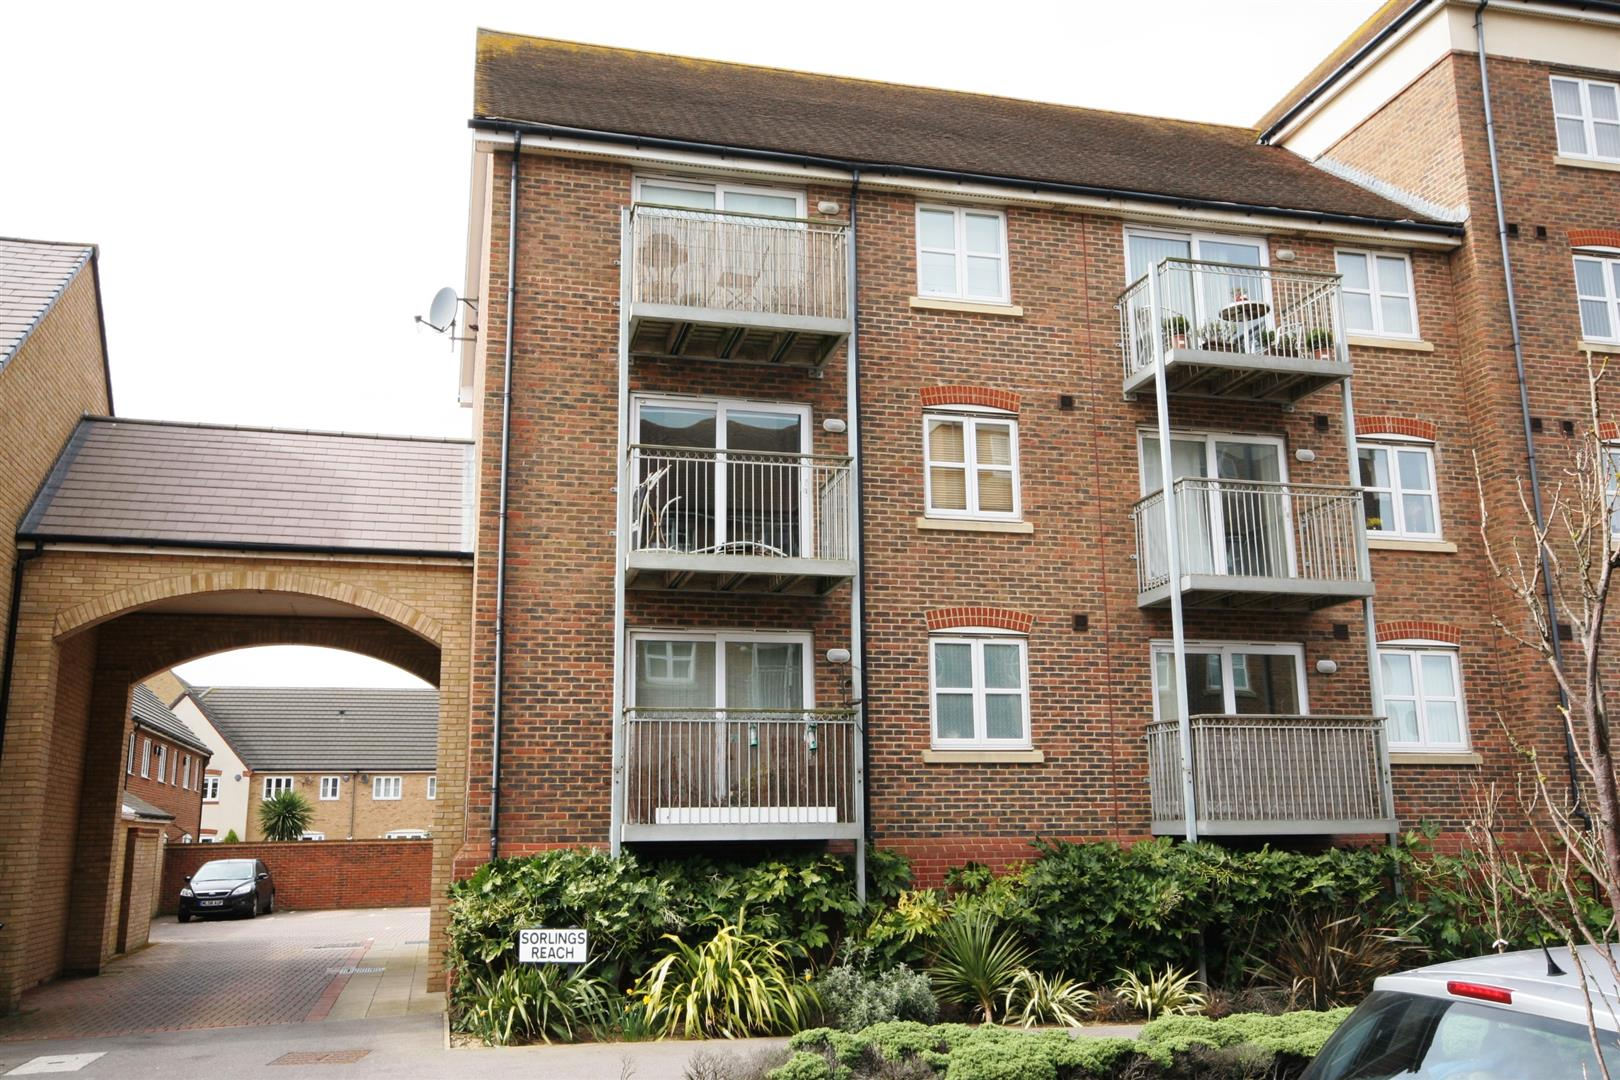 2 Bedrooms Property for sale in Sorlings Reach, Sussex wharf, Shoreham